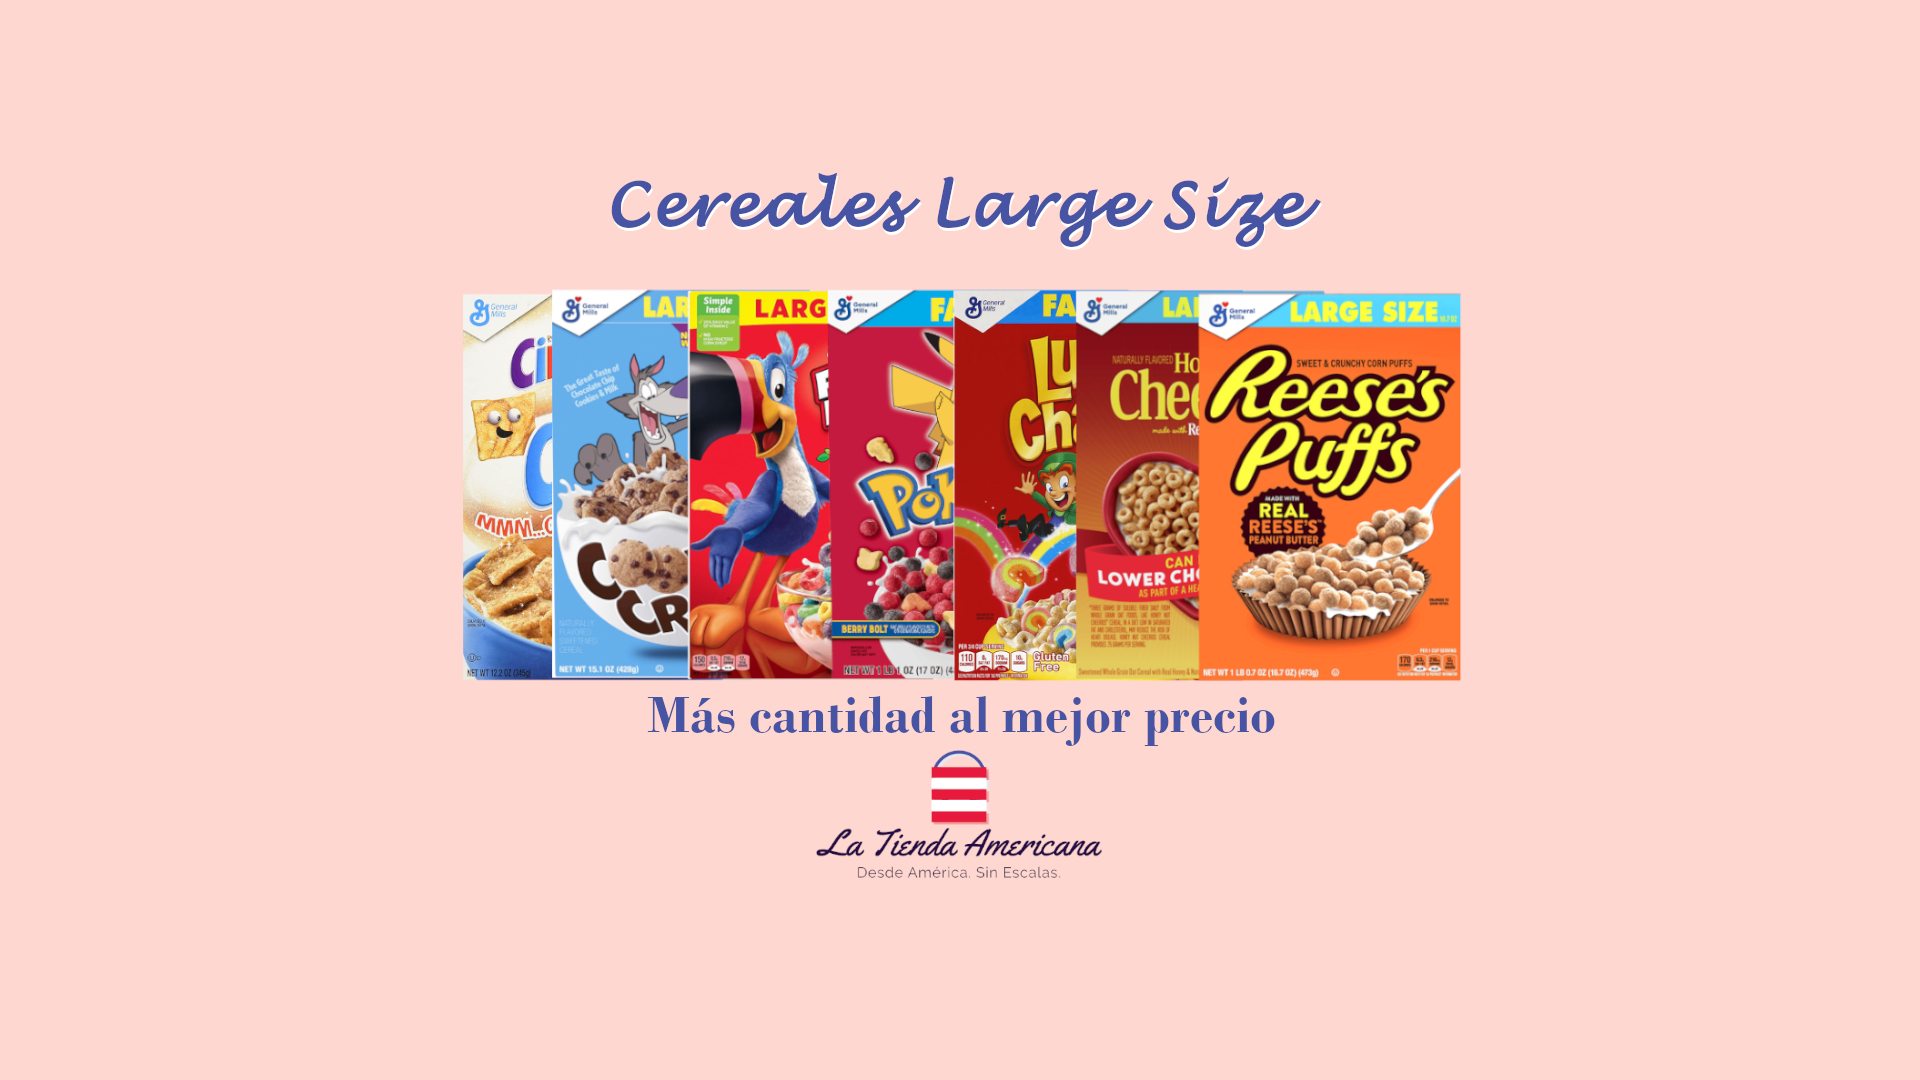 Cereales Americanos Large Size